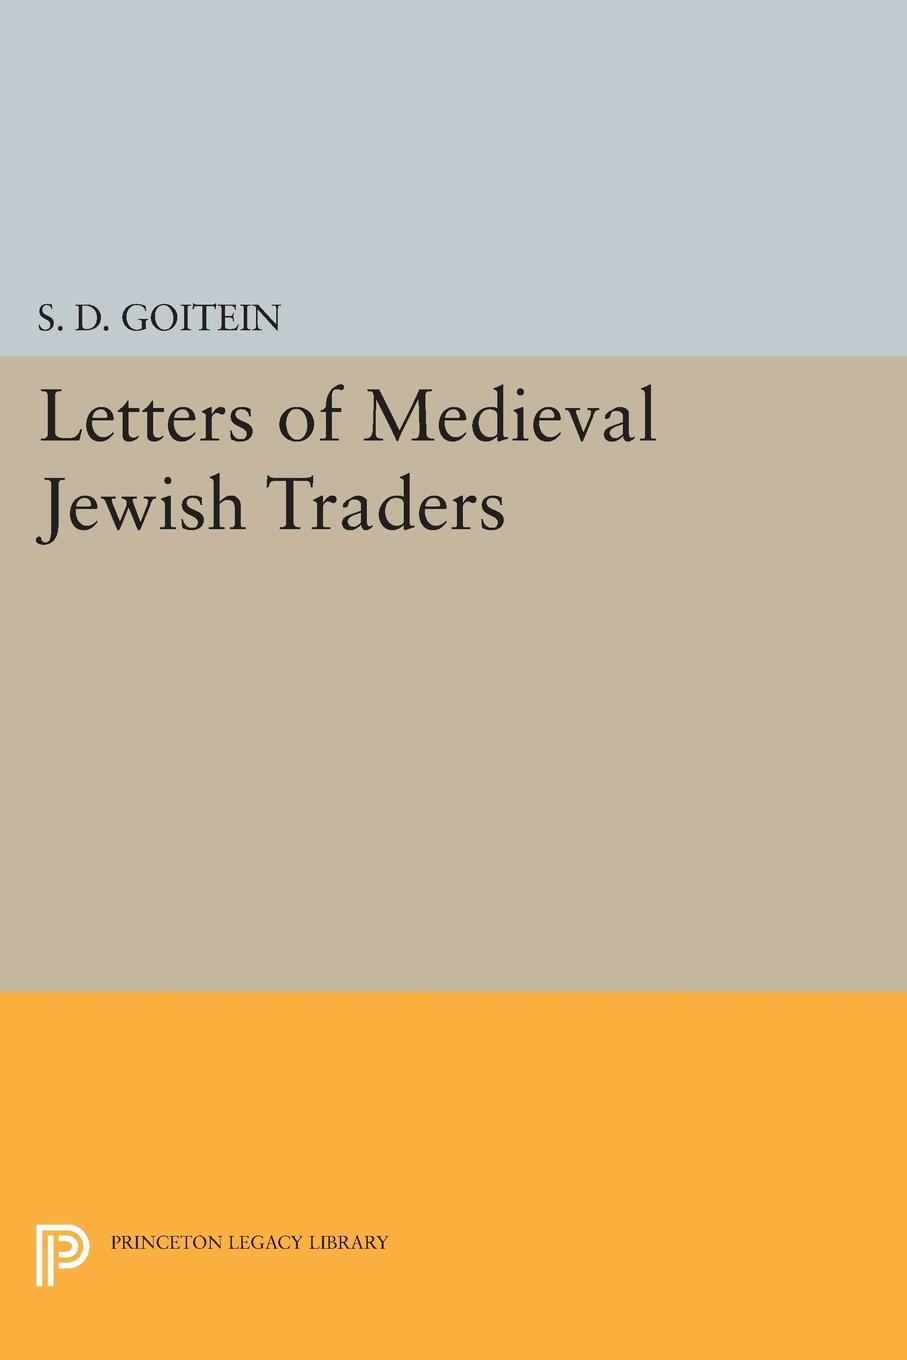 S. D. Goitein Letters of Medieval Jewish Traders